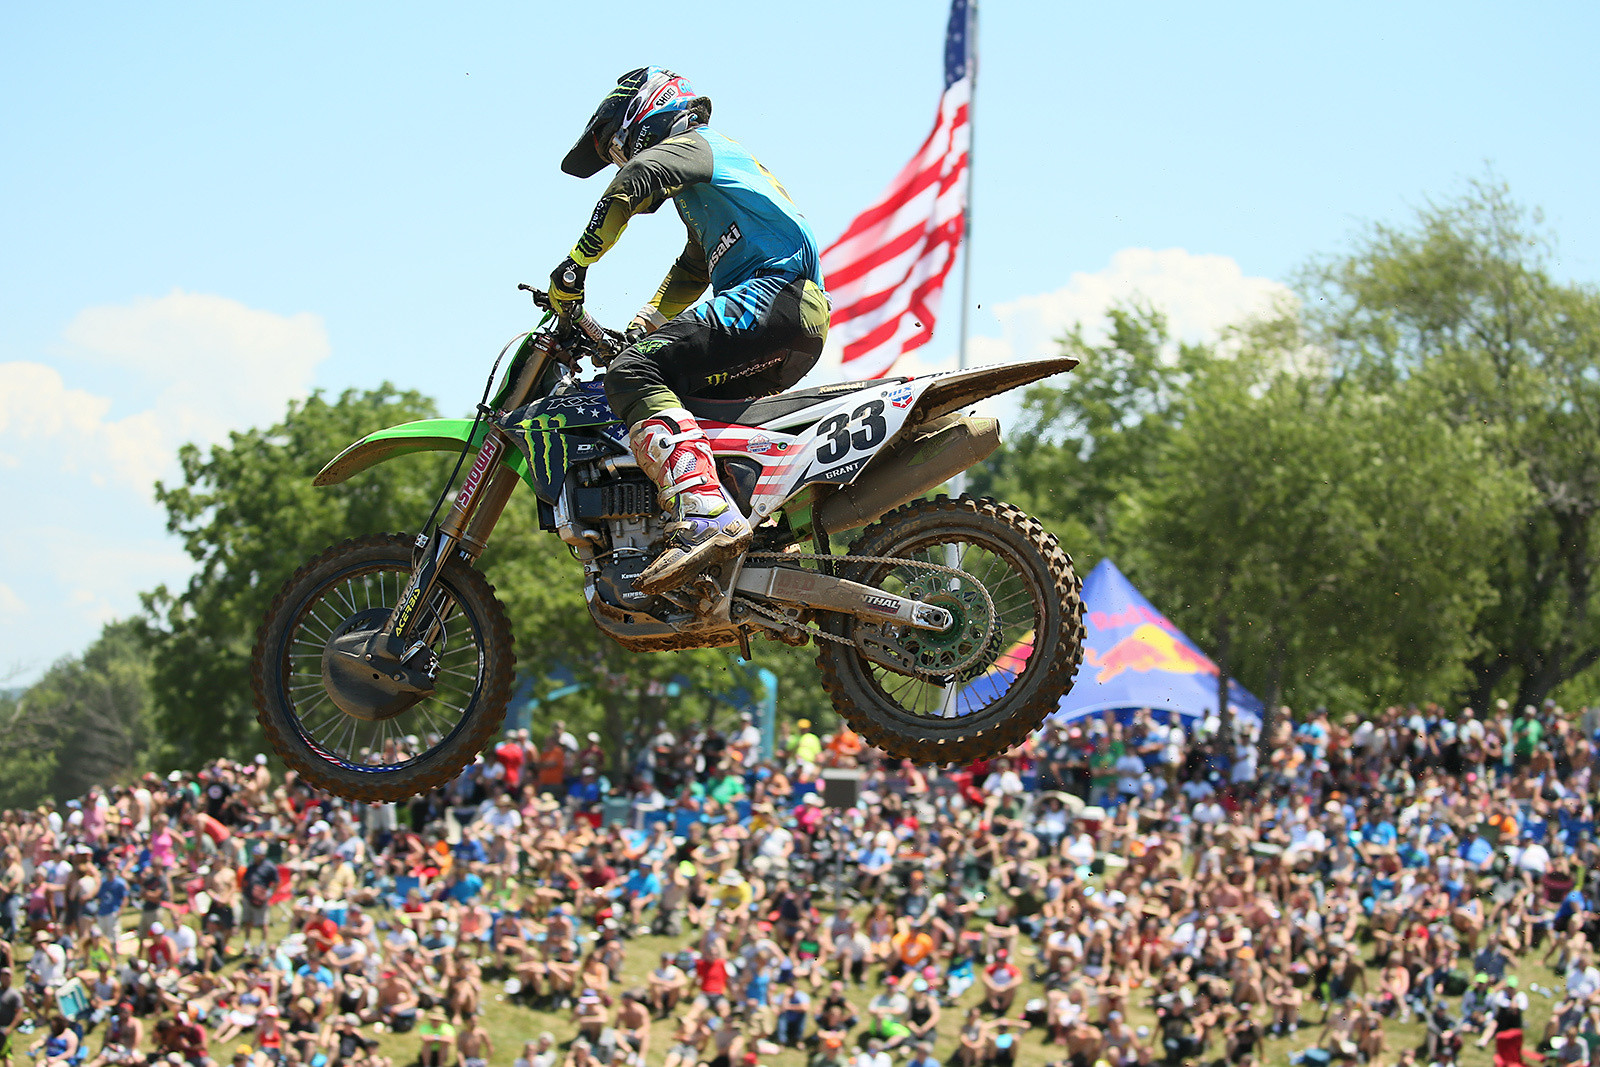 After tweaking his wrist in practice at Muddy Creek, Josh Grant had it checked out at home. A last-minute decision had him back in action for RedBud...after a press release had been sent out saying that he'd be sidelined for the weekend. Miss all the fun? No way. He scored a tenth in moto one, and a fifth in moto two for sixth overall.